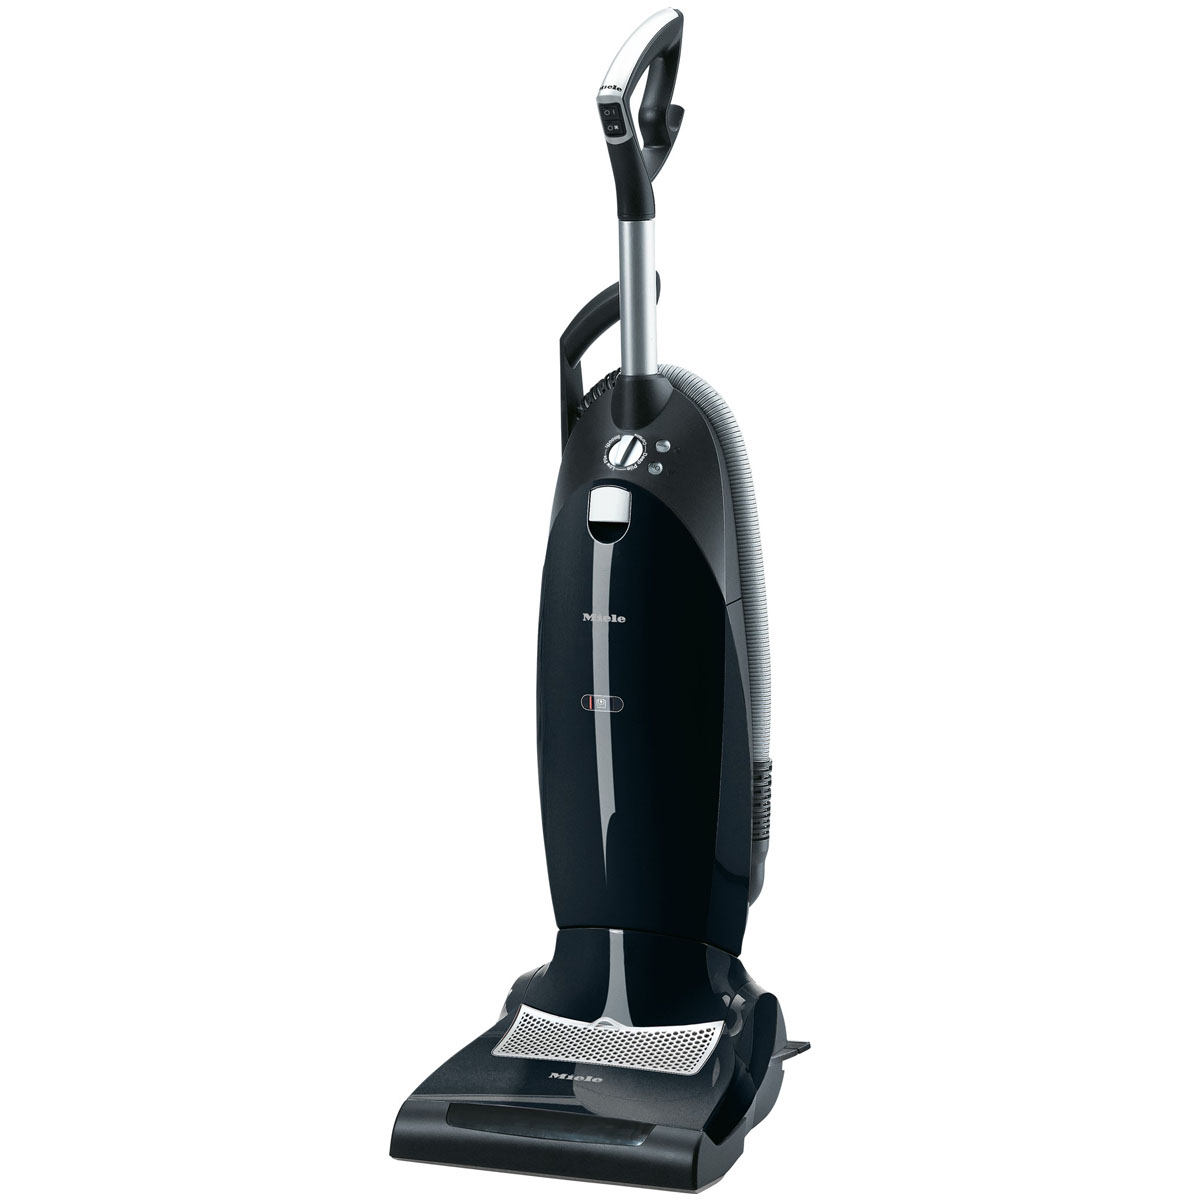 Miele 10354230 Upright Vacuum Cleaner